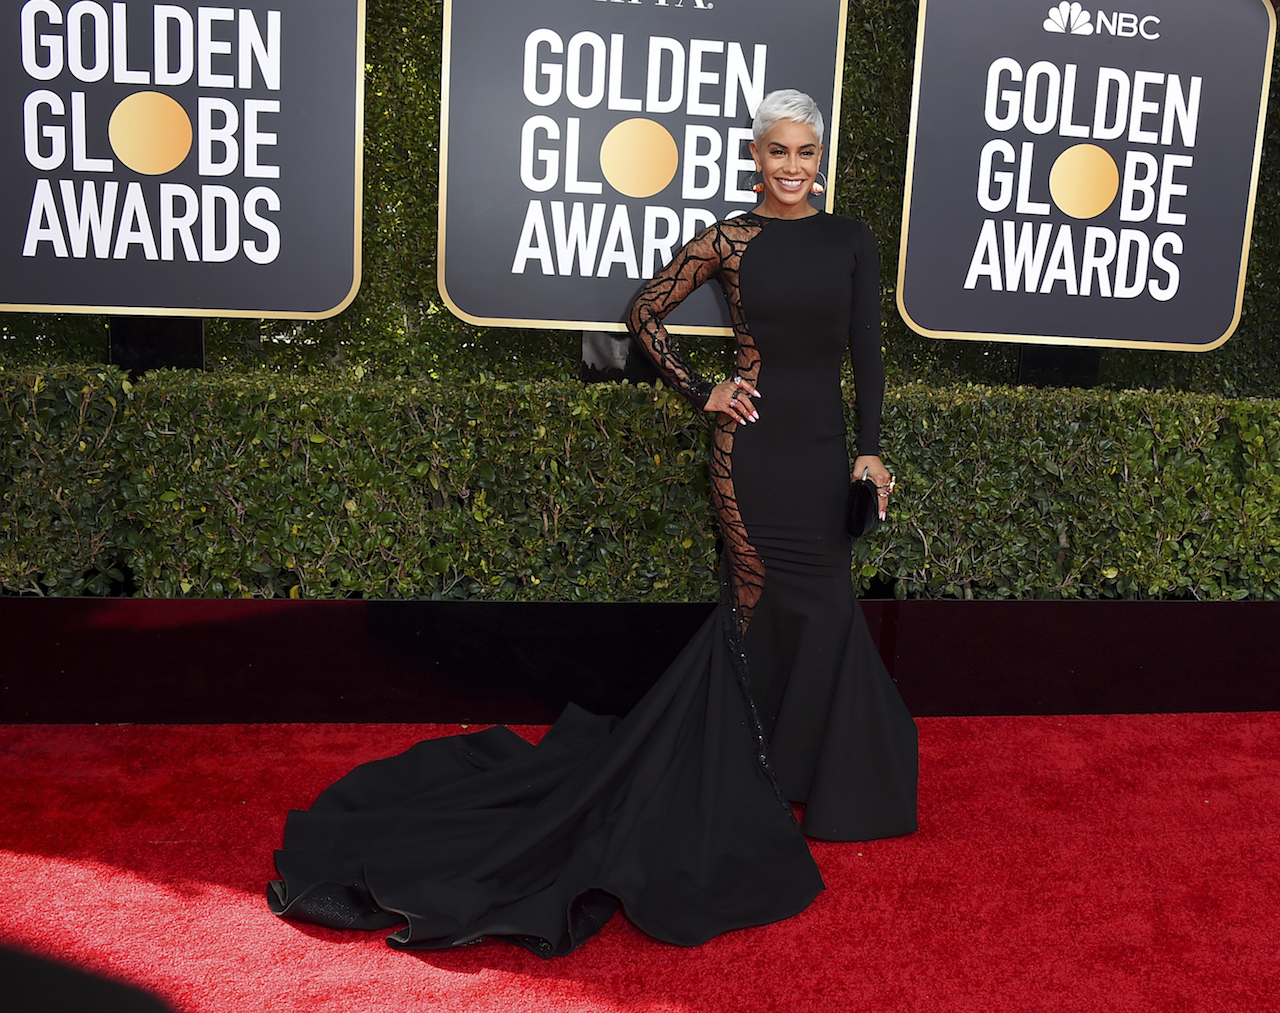 <div class='meta'><div class='origin-logo' data-origin='AP'></div><span class='caption-text' data-credit='Jordan Strauss/Invision/AP'>Sibley Scoles arrives at the 76th annual Golden Globe Awards at the Beverly Hilton Hotel on Sunday, Jan. 6, 2019, in Beverly Hills, Calif.</span></div>